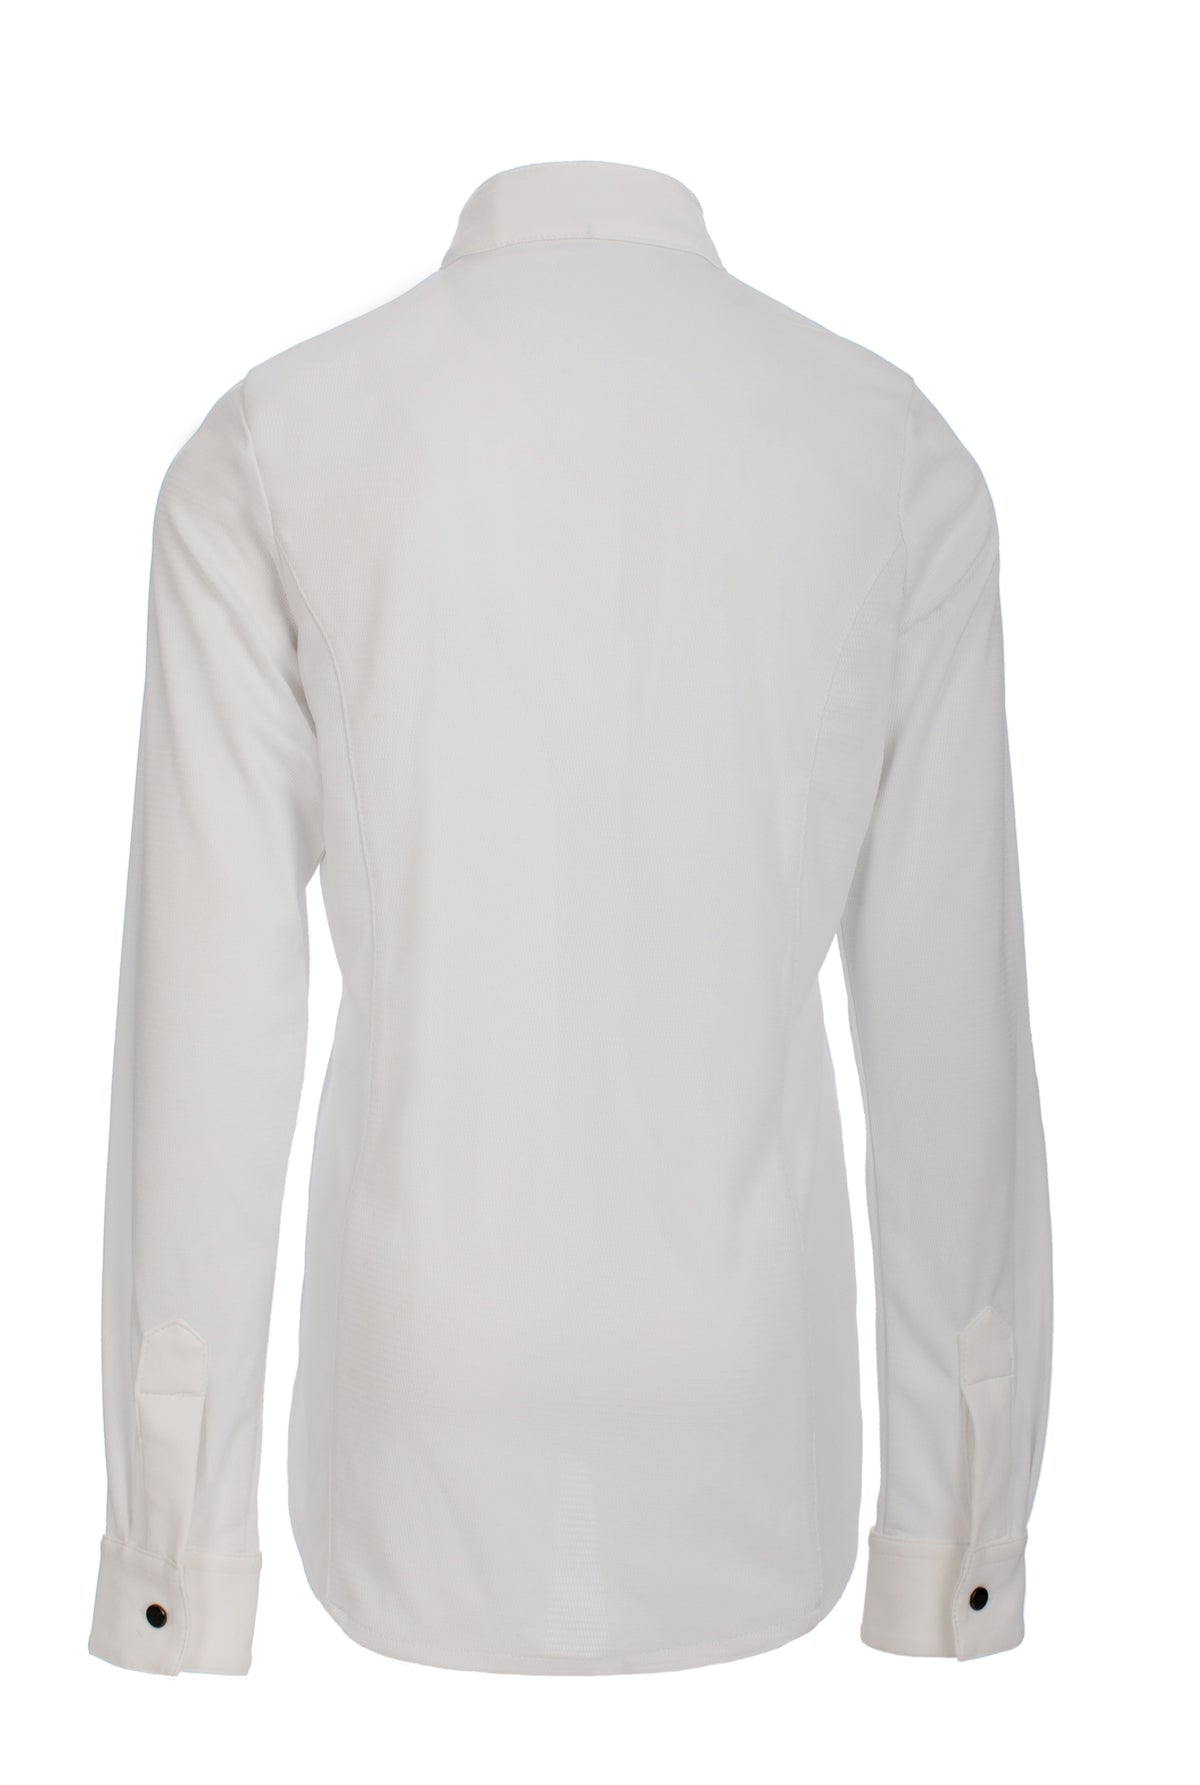 Looking for great Kids gear this season?  Check out the Alessandro Albanese Kids Kara Girls Long Sleeve Shirt!  Stylish and comfortable for all ages, and comes in 2 great colors!  Lightweight / Cool and breathable Easy care  / Machine washable